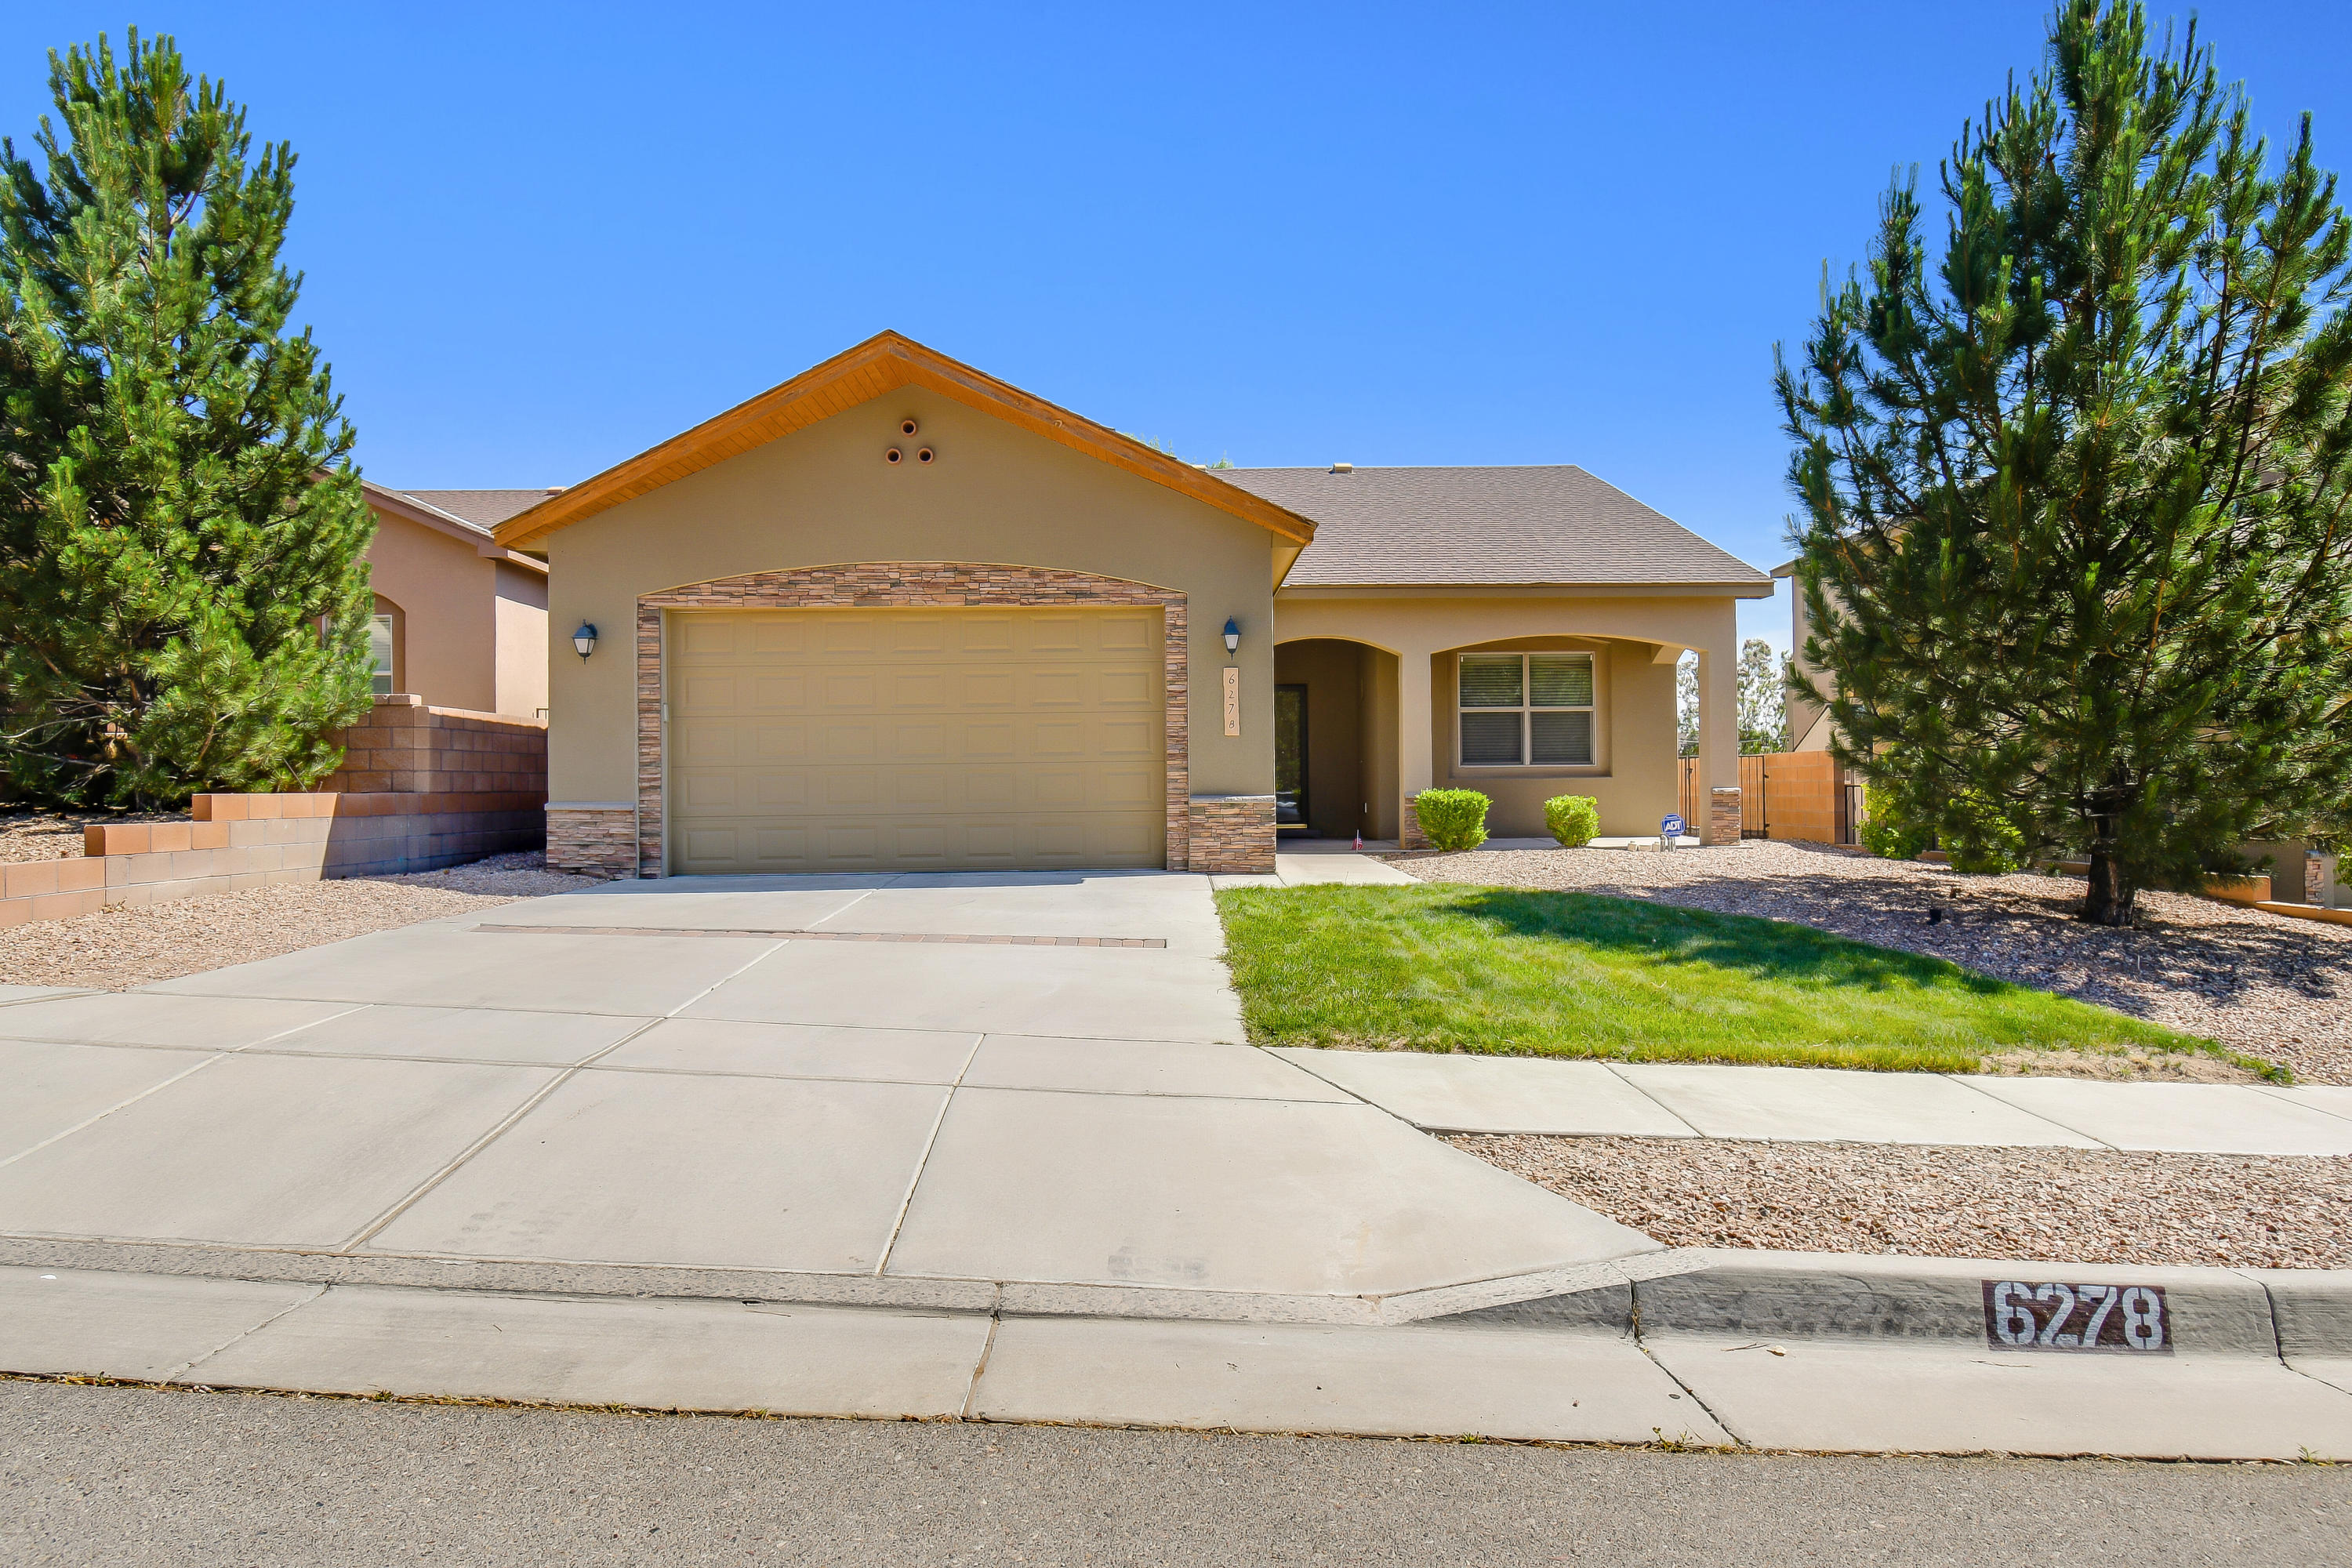 This beautiful NM Green built Paul Allen home is ready for a new owner! Right in the desirable Saltillo neighborhood. Home has a cozy fireplace that turns on with the flip of a switch for those colder nights! In the summer the private backyard, with lots of shade from trees and a covered patio is ready for you to enjoy. The dog run on the west side of the house is ready and waiting for your best friend.  Green build and Energy Star appliances  (like the tankless water heater) means lower bills!!! Stop by to see it before it's gone!